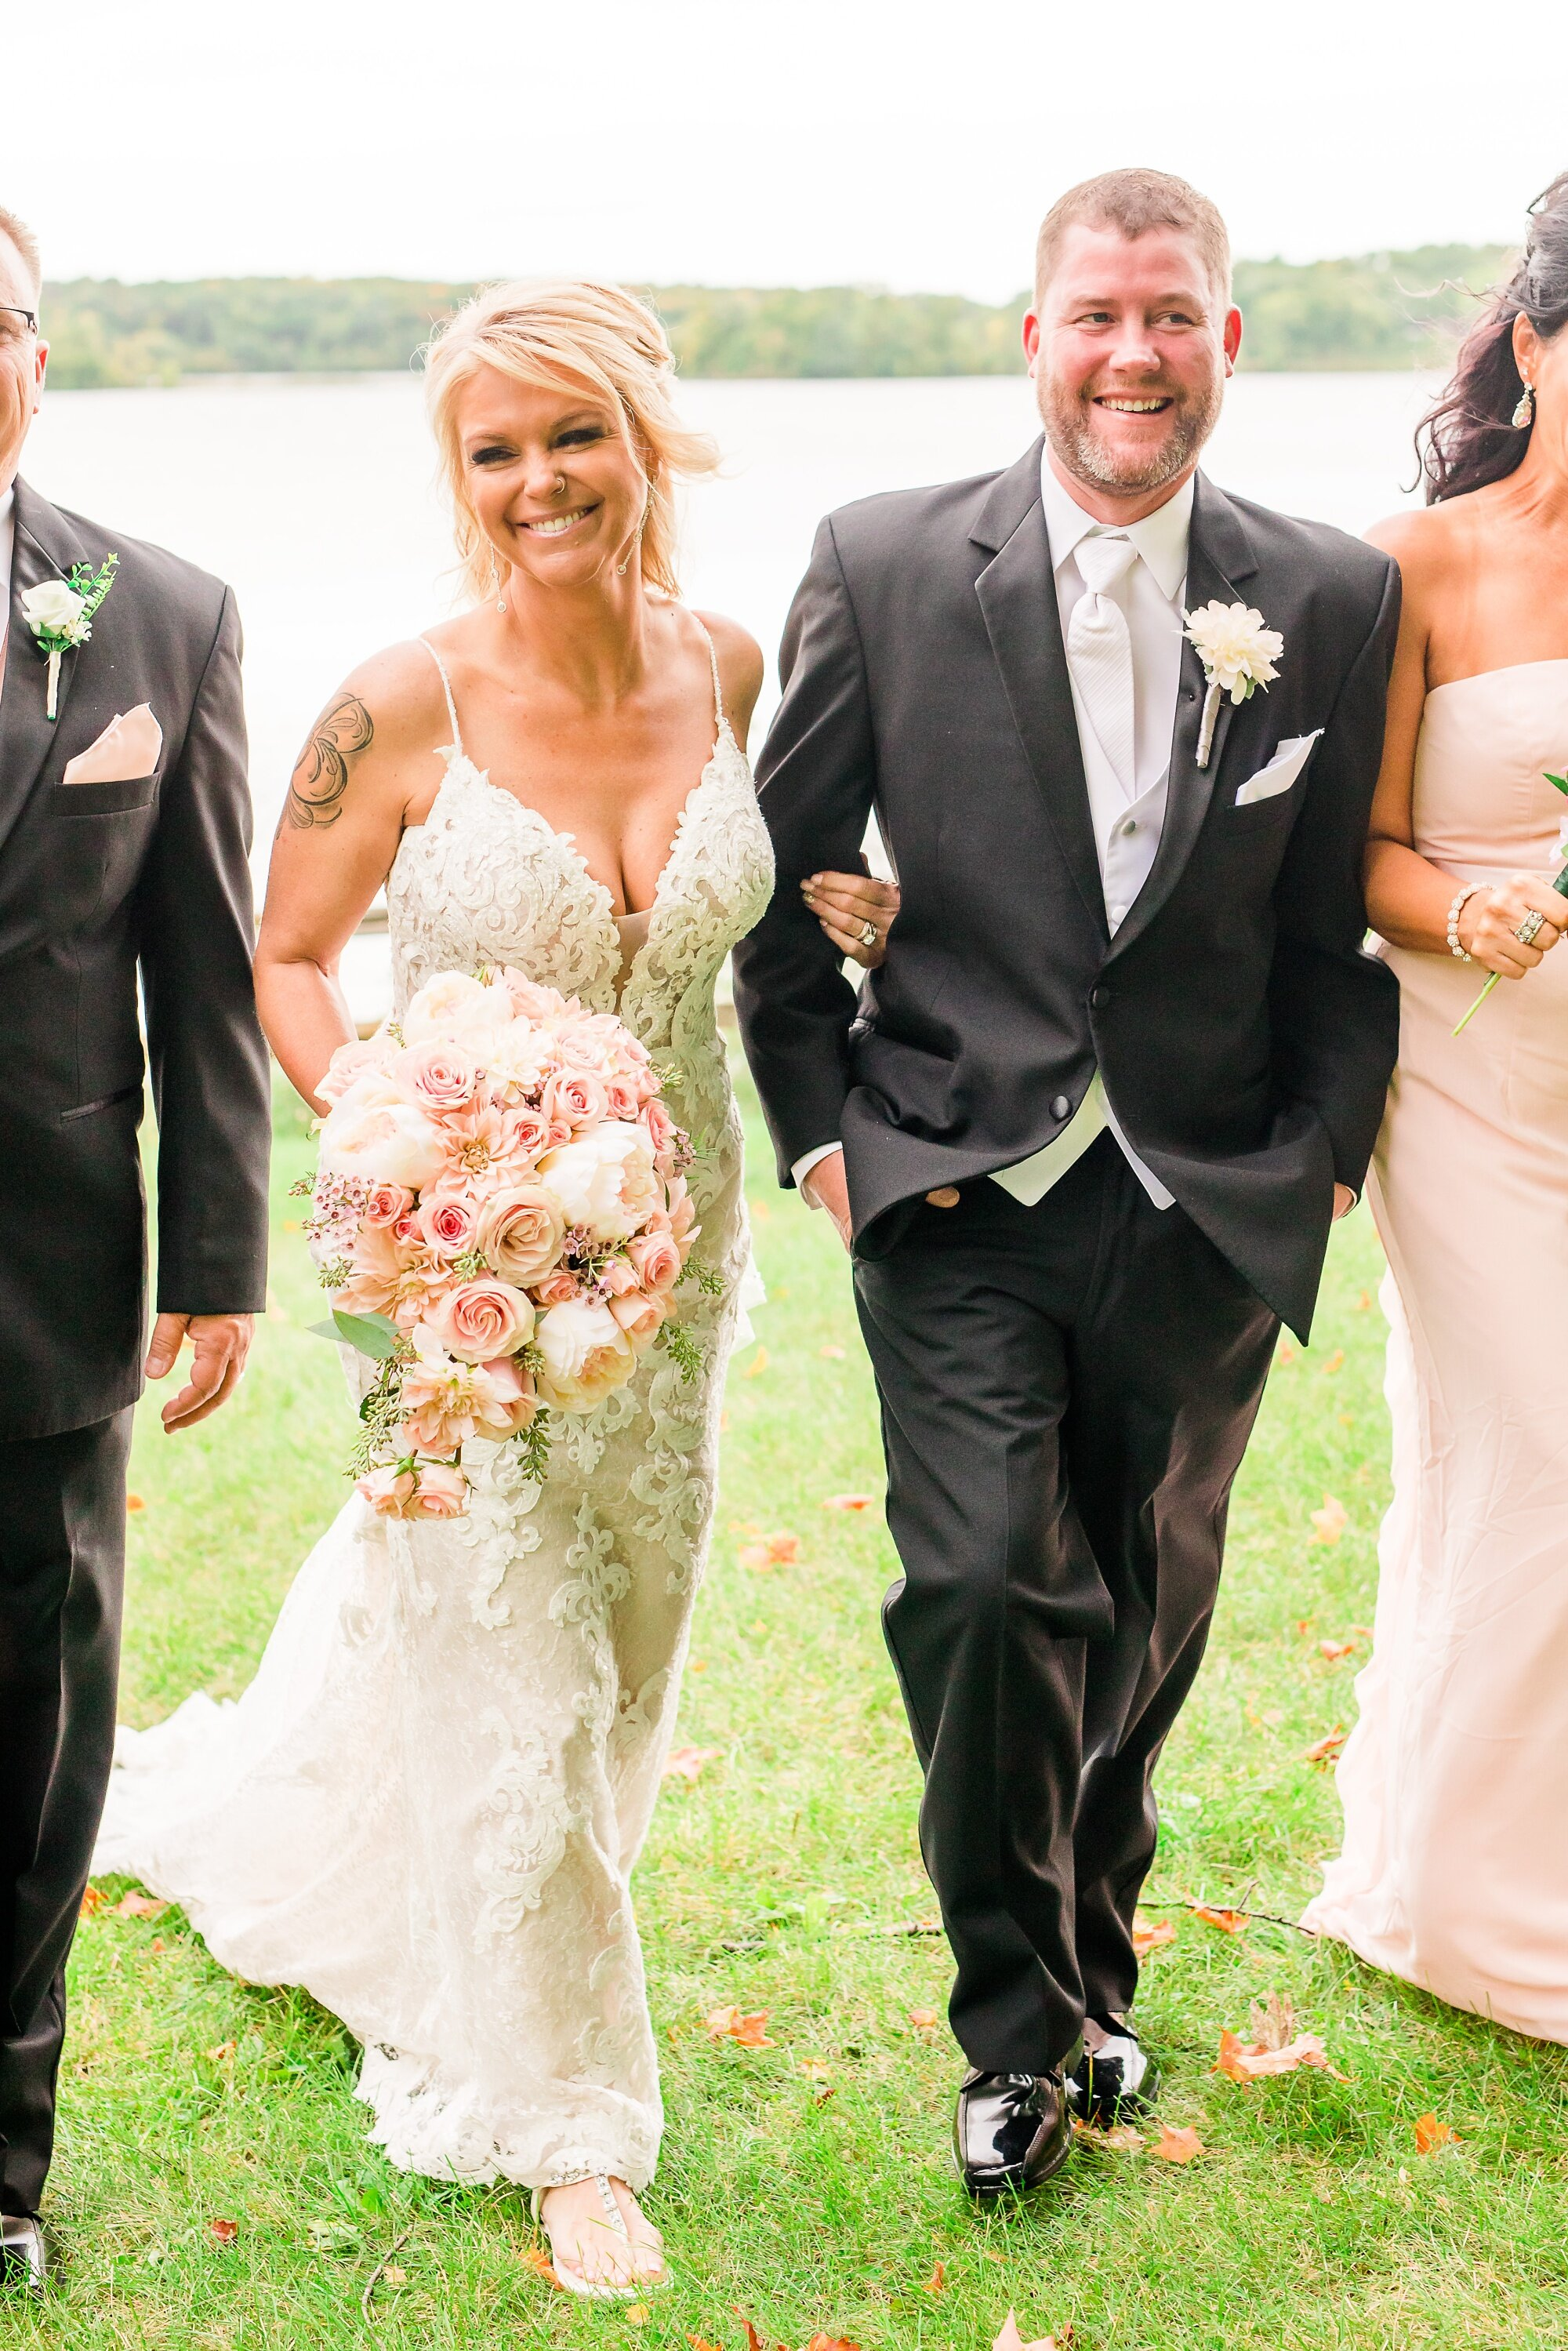 Amber Langerud Photography_Eagle Lake Rustic Styled Outdoor Wedding in Minnesota_6852.jpg